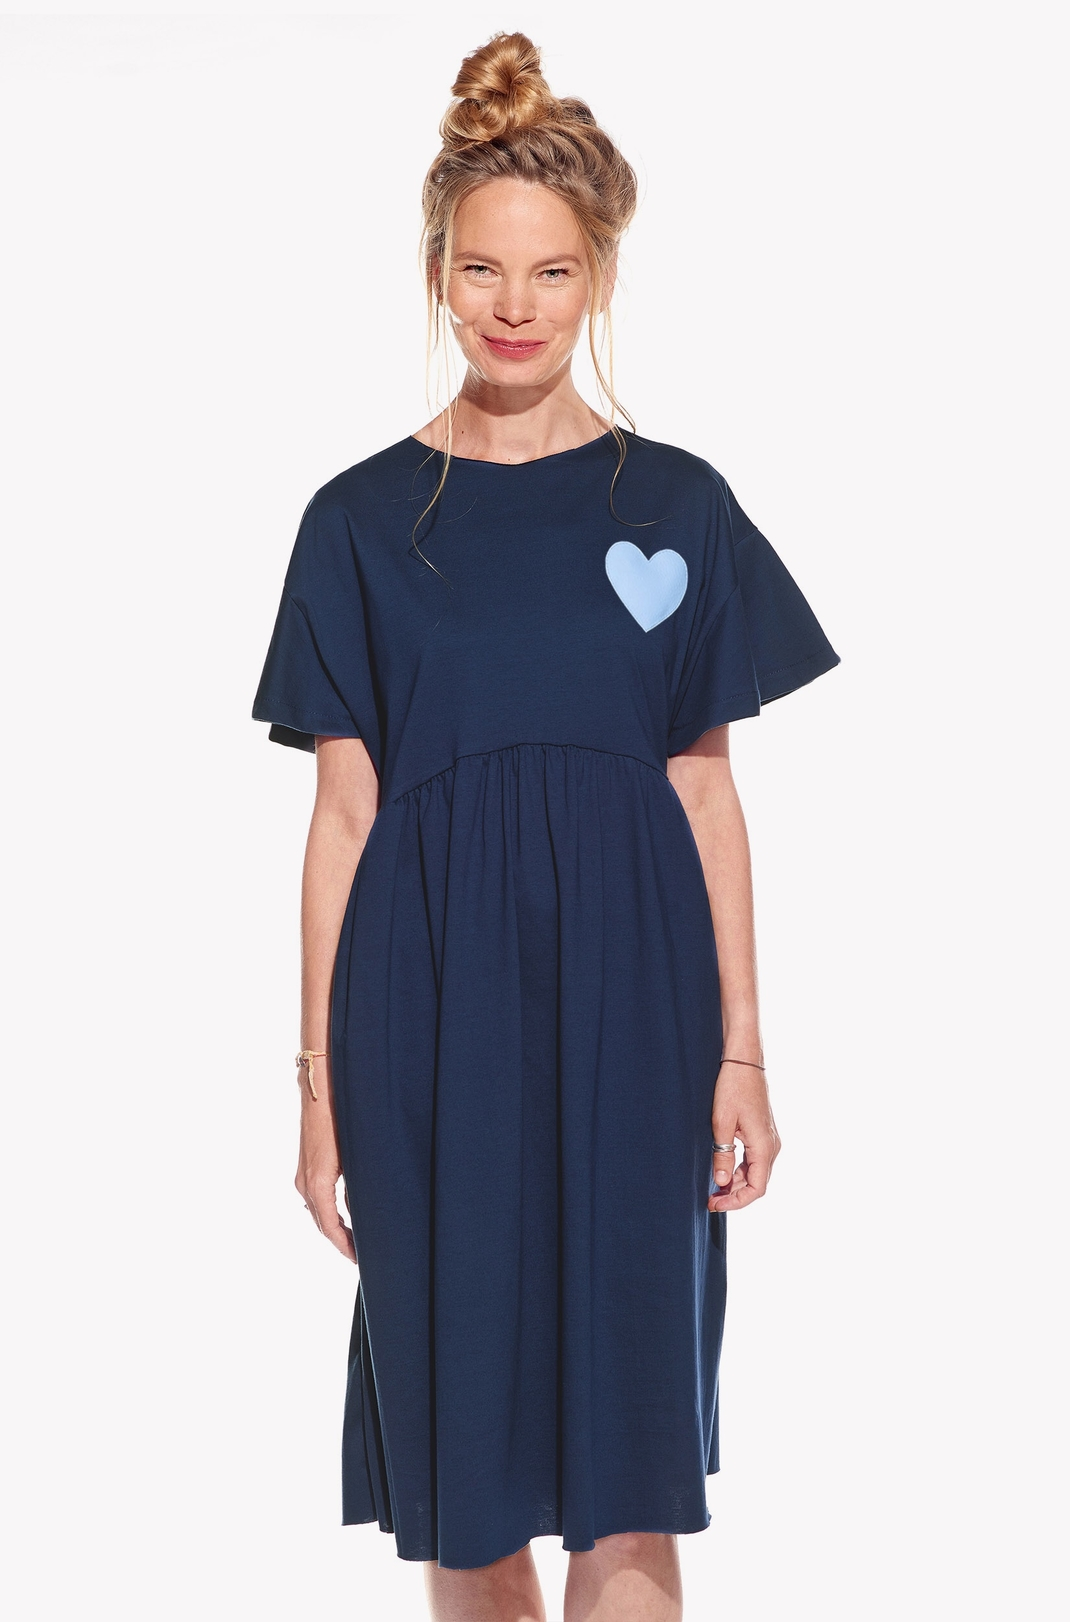 Dresses with heart